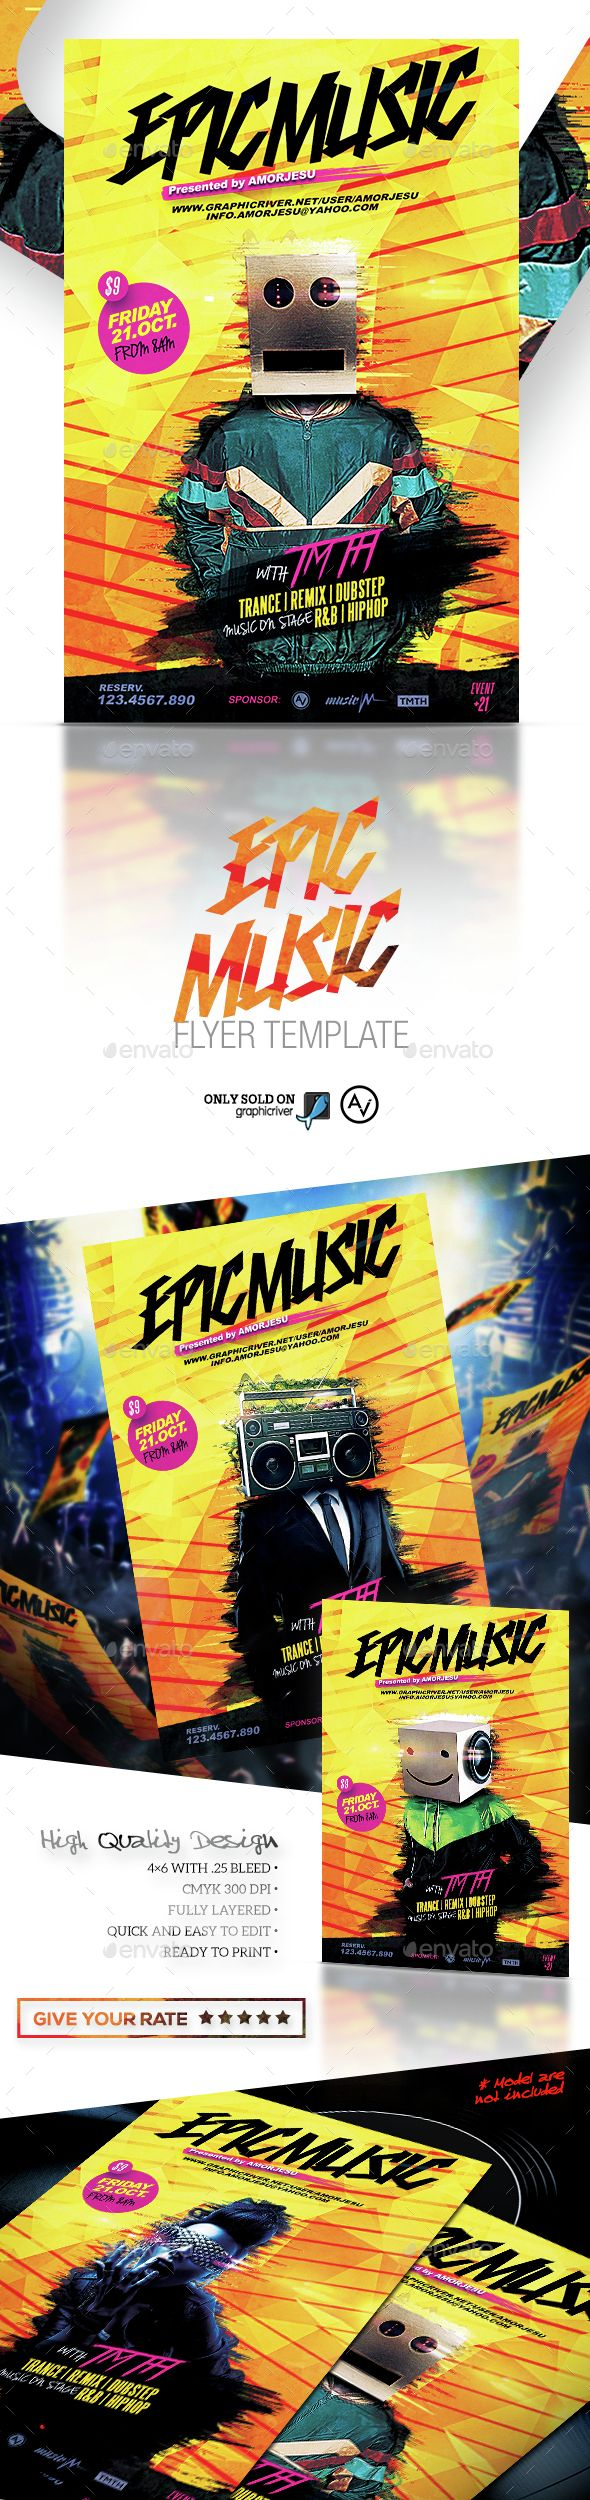 Epic Music Flyer Template PSD. Download here: http://graphicriver.net/item/epic-music-flyer-template/14940417?ref=ksioks